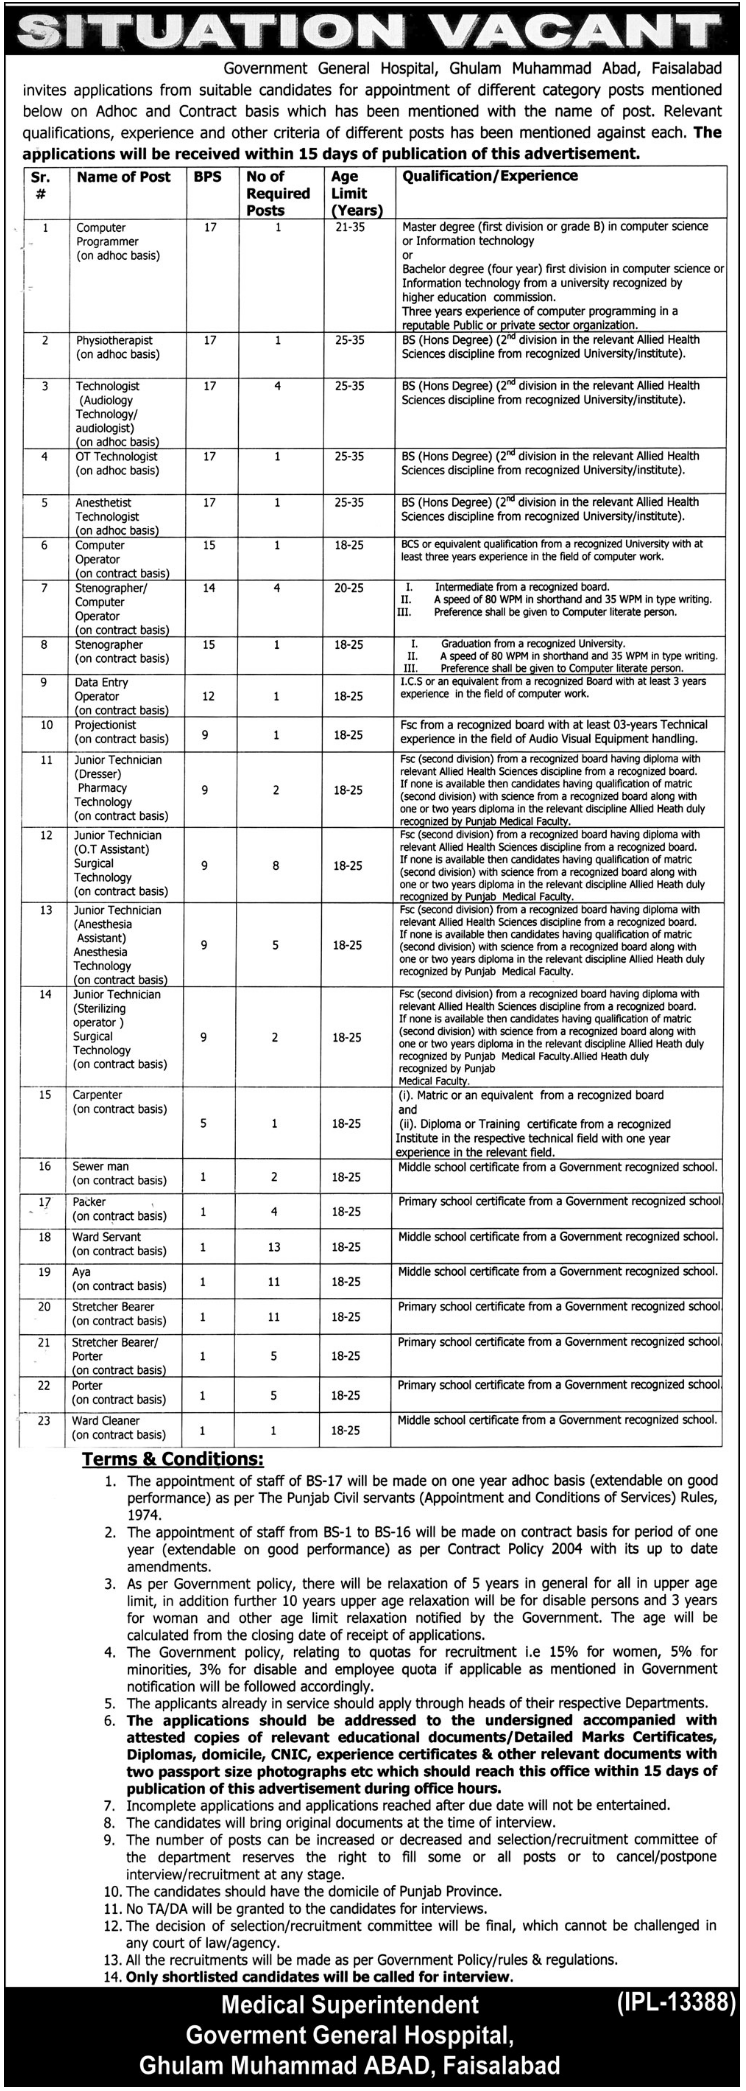 Govt General Hospital Faisalabad Staff required